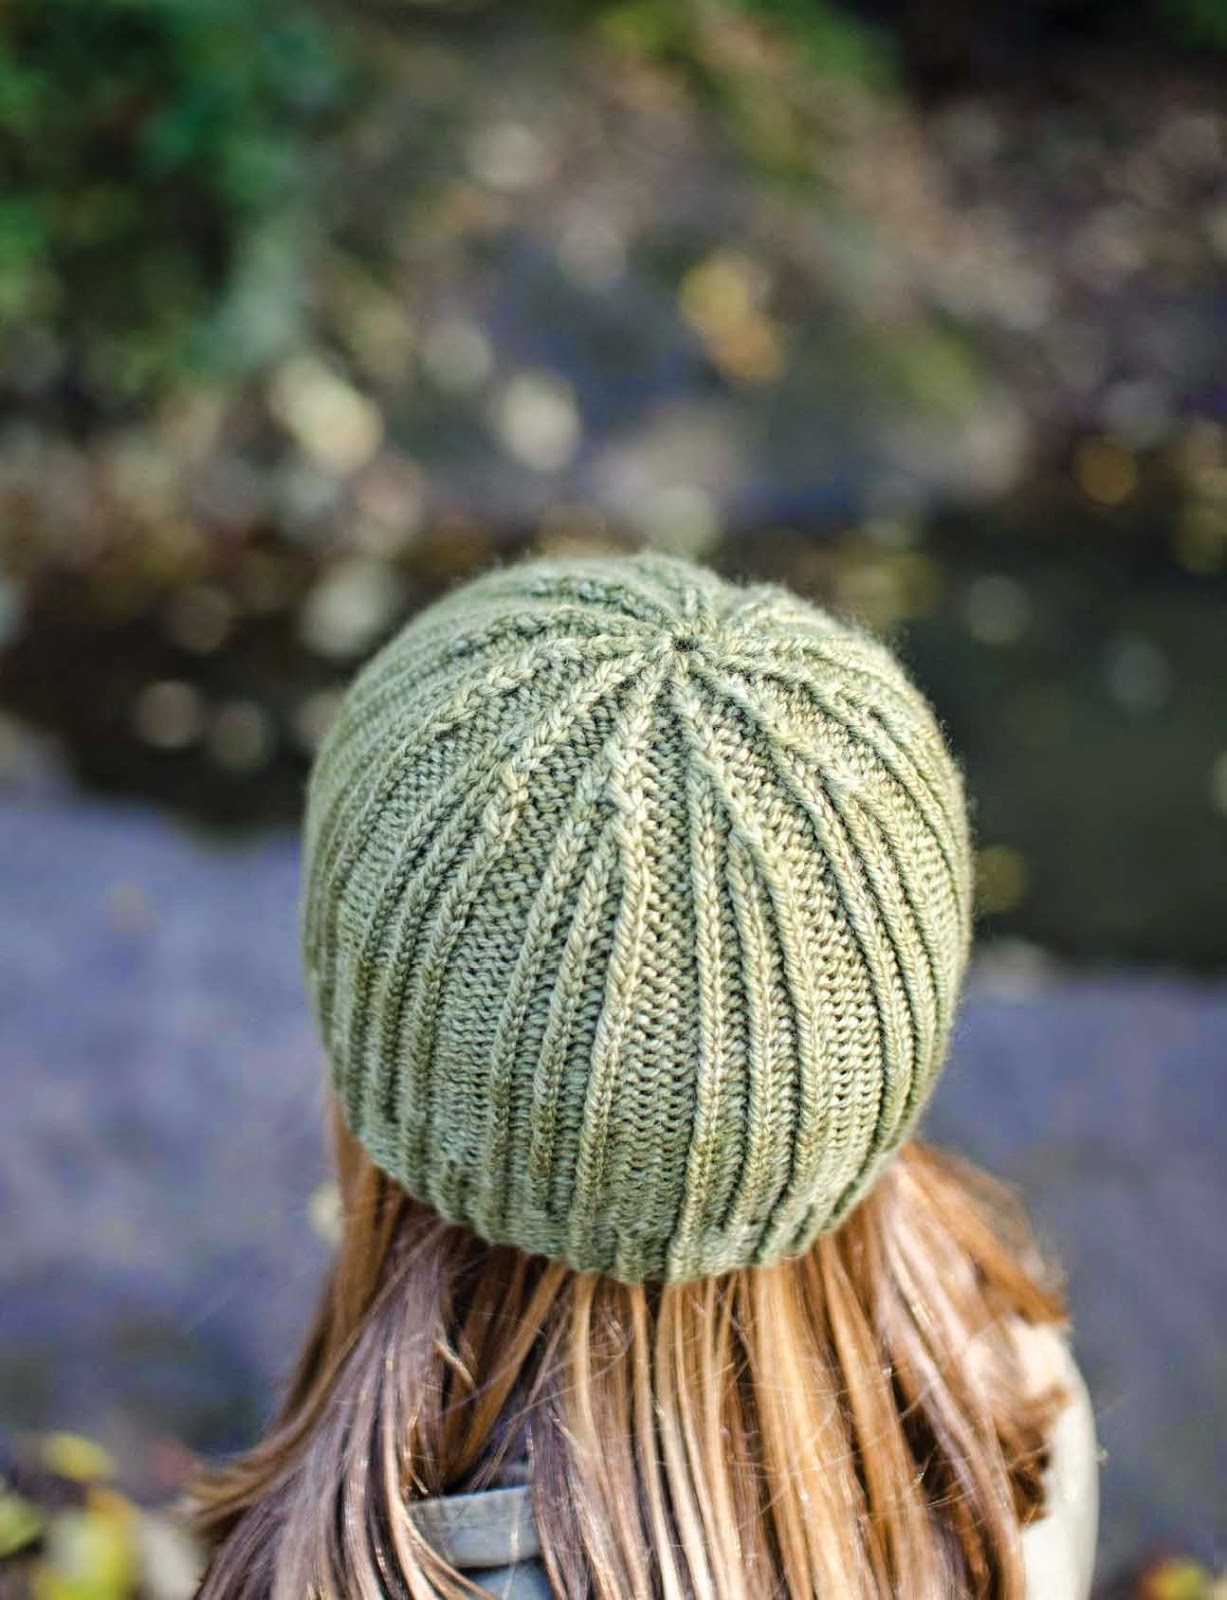 Wylam hat pattern from Head to Toe by Katya Frankel